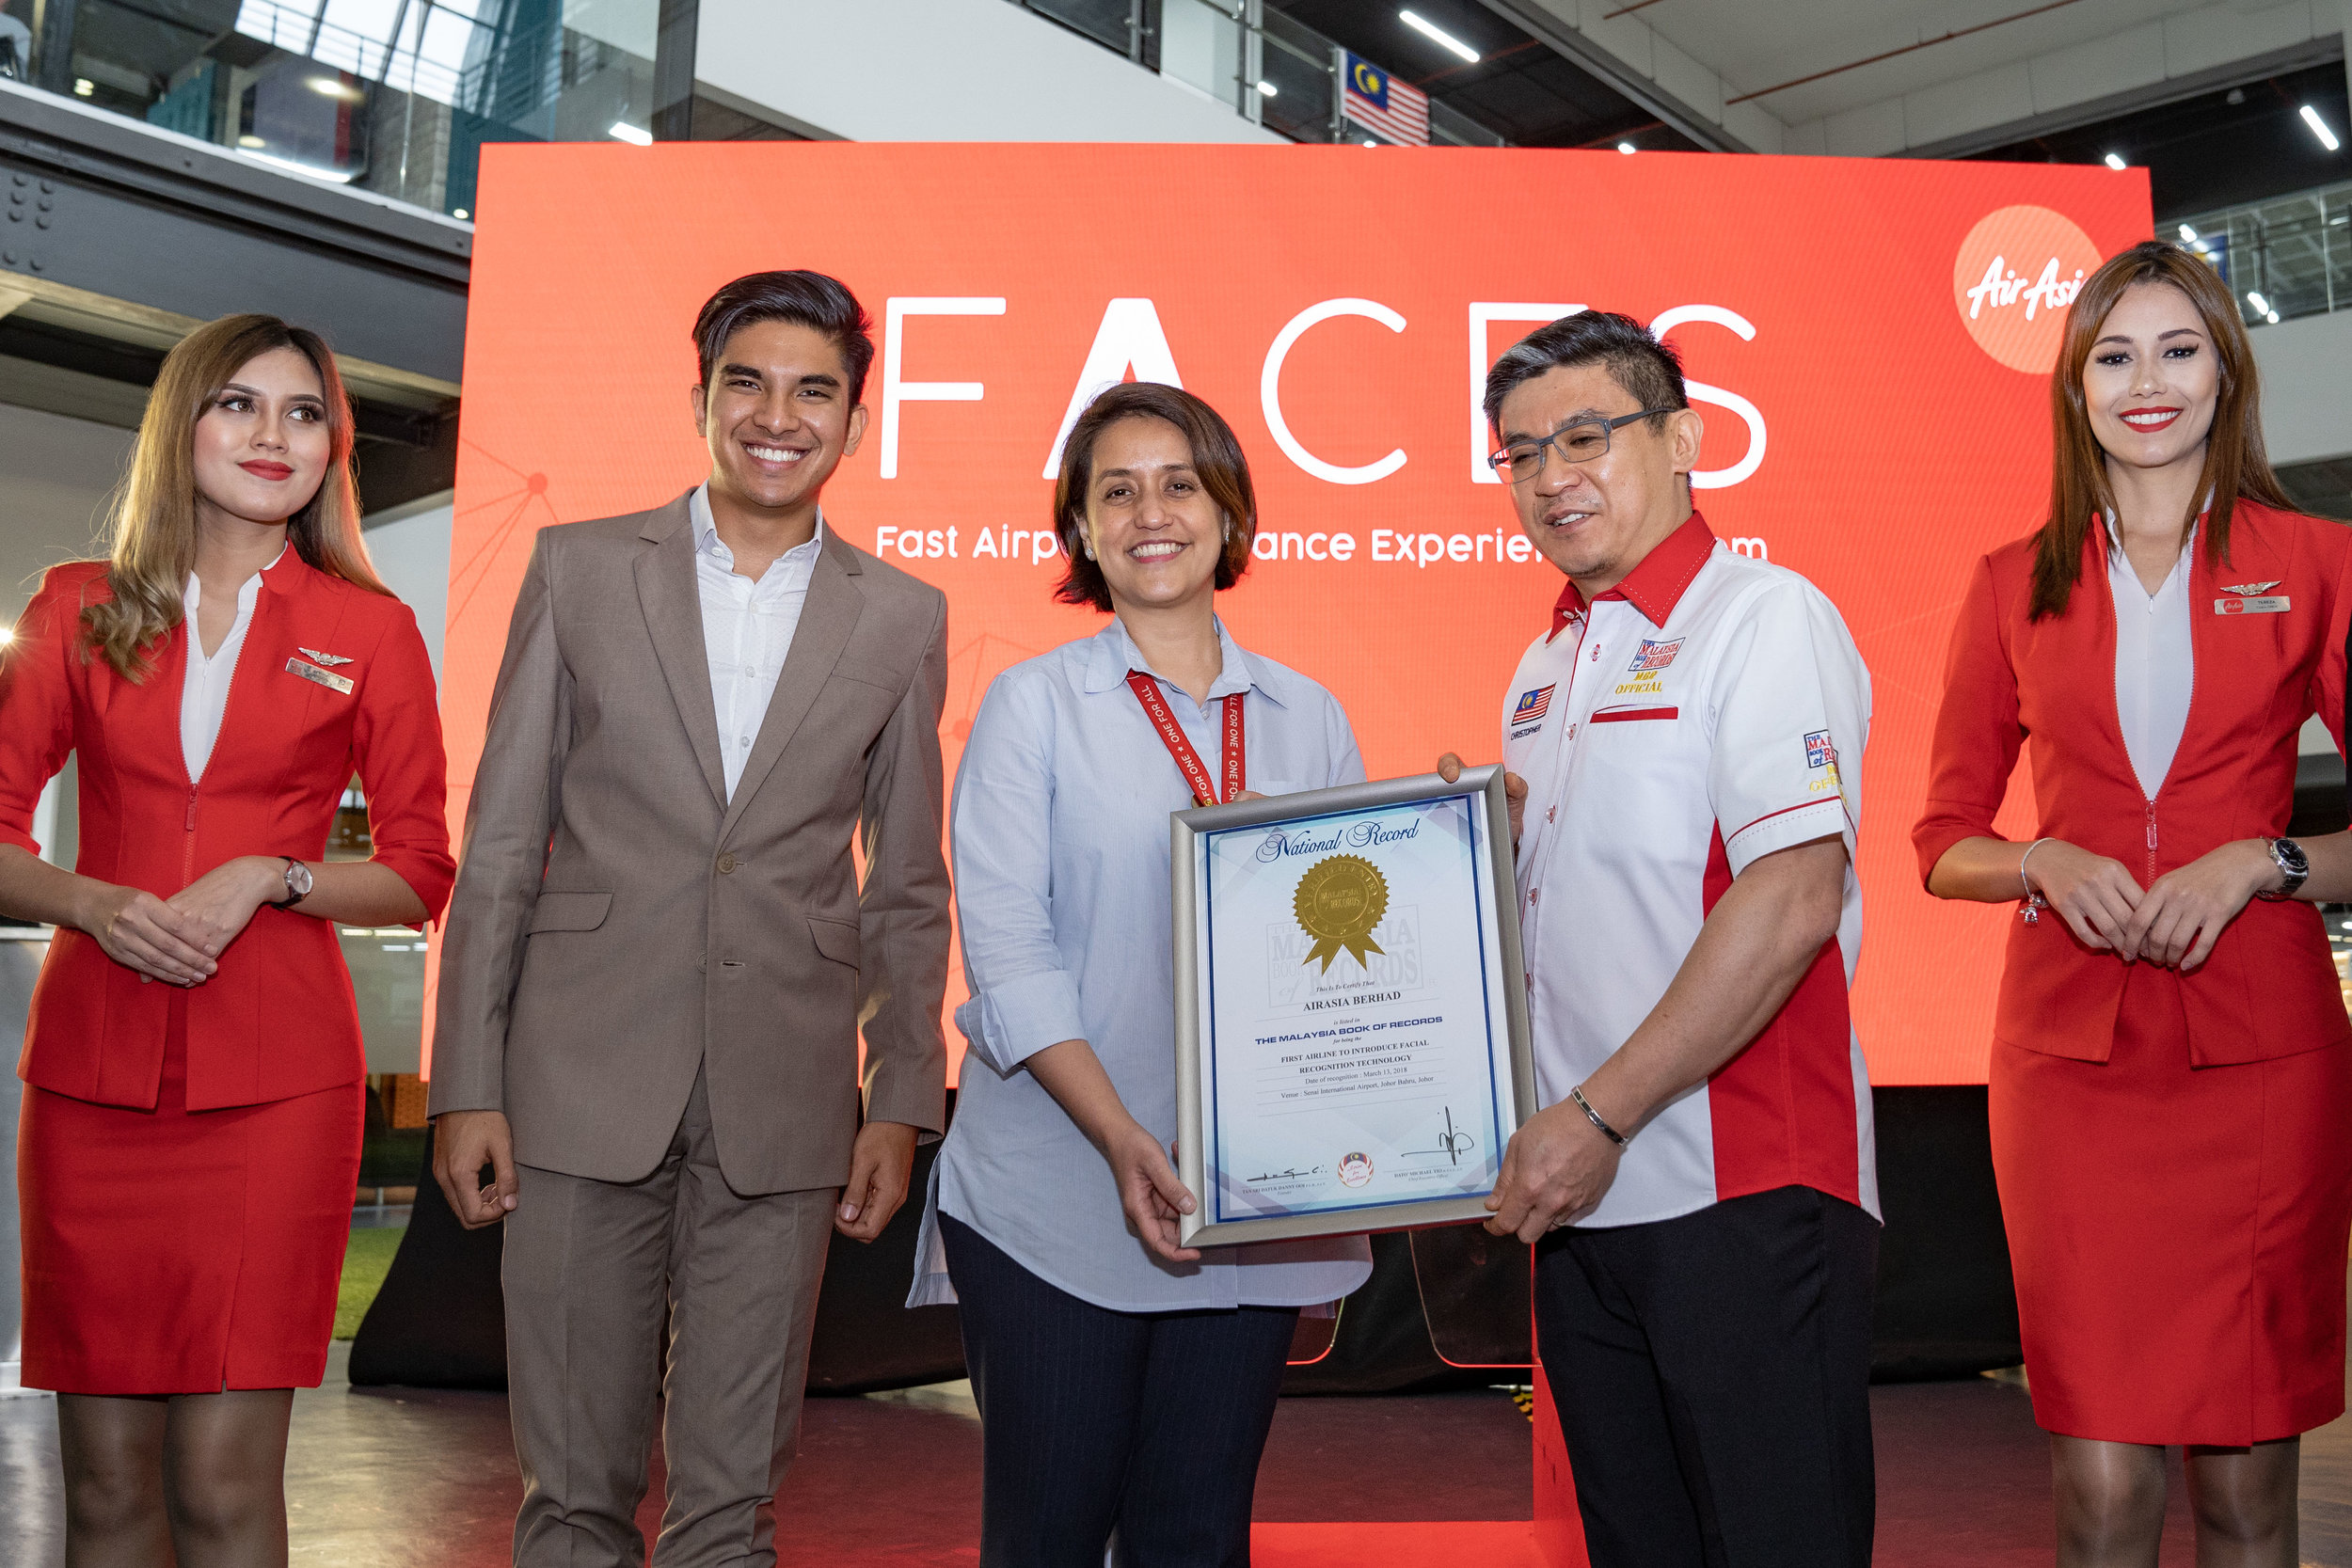 Photo Caption: (Second from right) Malaysia Book of Records (MBR) Chief Operating Officer Christopher Wong Hong Wai presented the MBR certificate for FACES to AirAsia Deputy Group CEO (Digital, Transformation and Corporate Services) Aireen Omar, witnessed by Malaysia's Minister of Youth and Sports, YB Syed Saddiq Syed Abdul Rahman at AirAsia headquarters, RedQ, today.